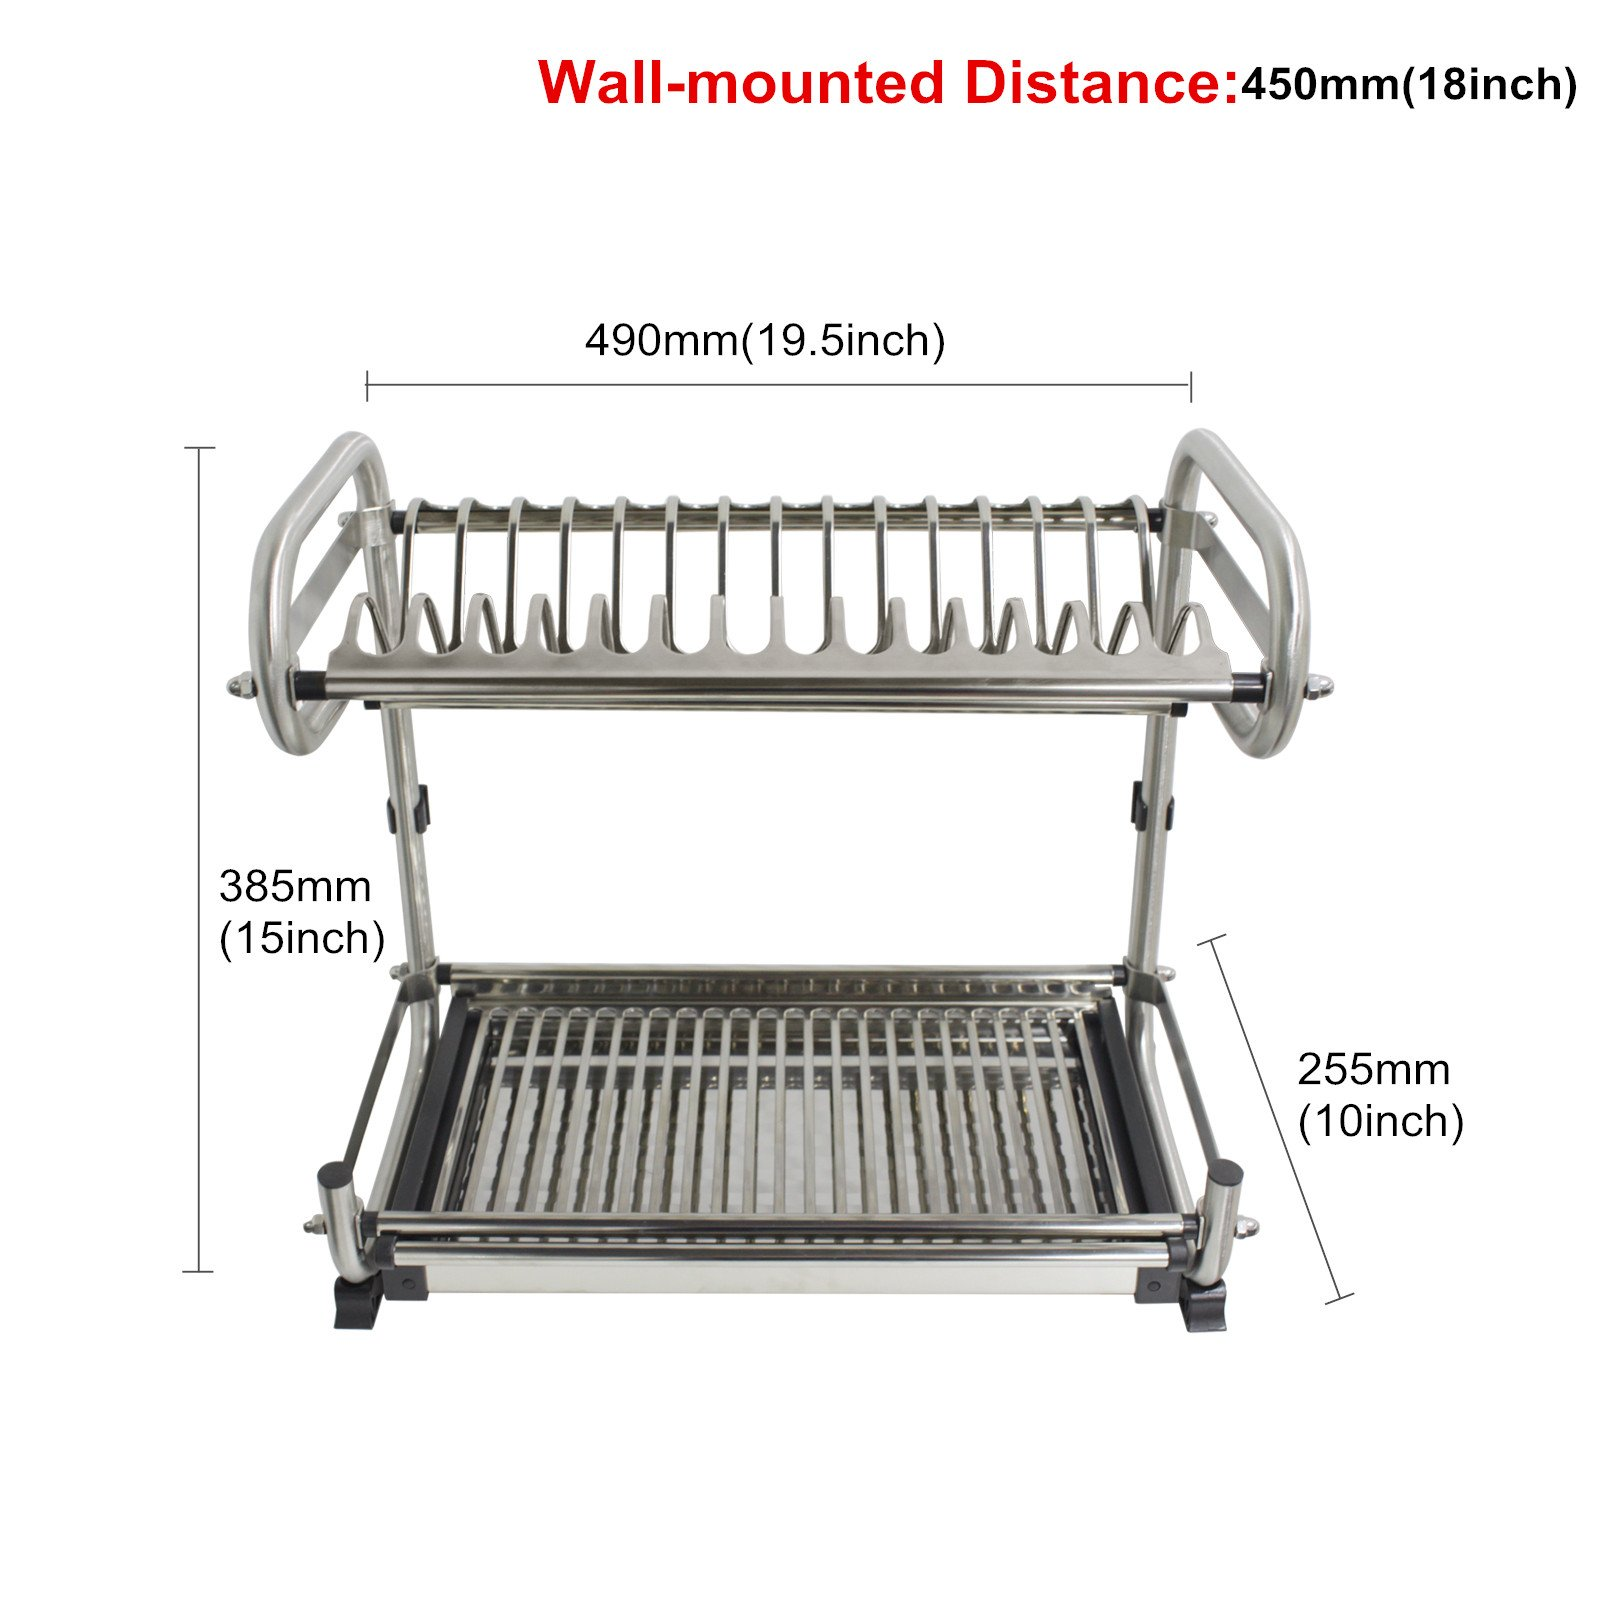 Probrico 2-Tier Stainless Steel Dish Drying Dryer Rack 490mm(19.5'') Drainer Plate Bowl Storage Organizer Holder Wall Mounted Distance:450mm(18'')